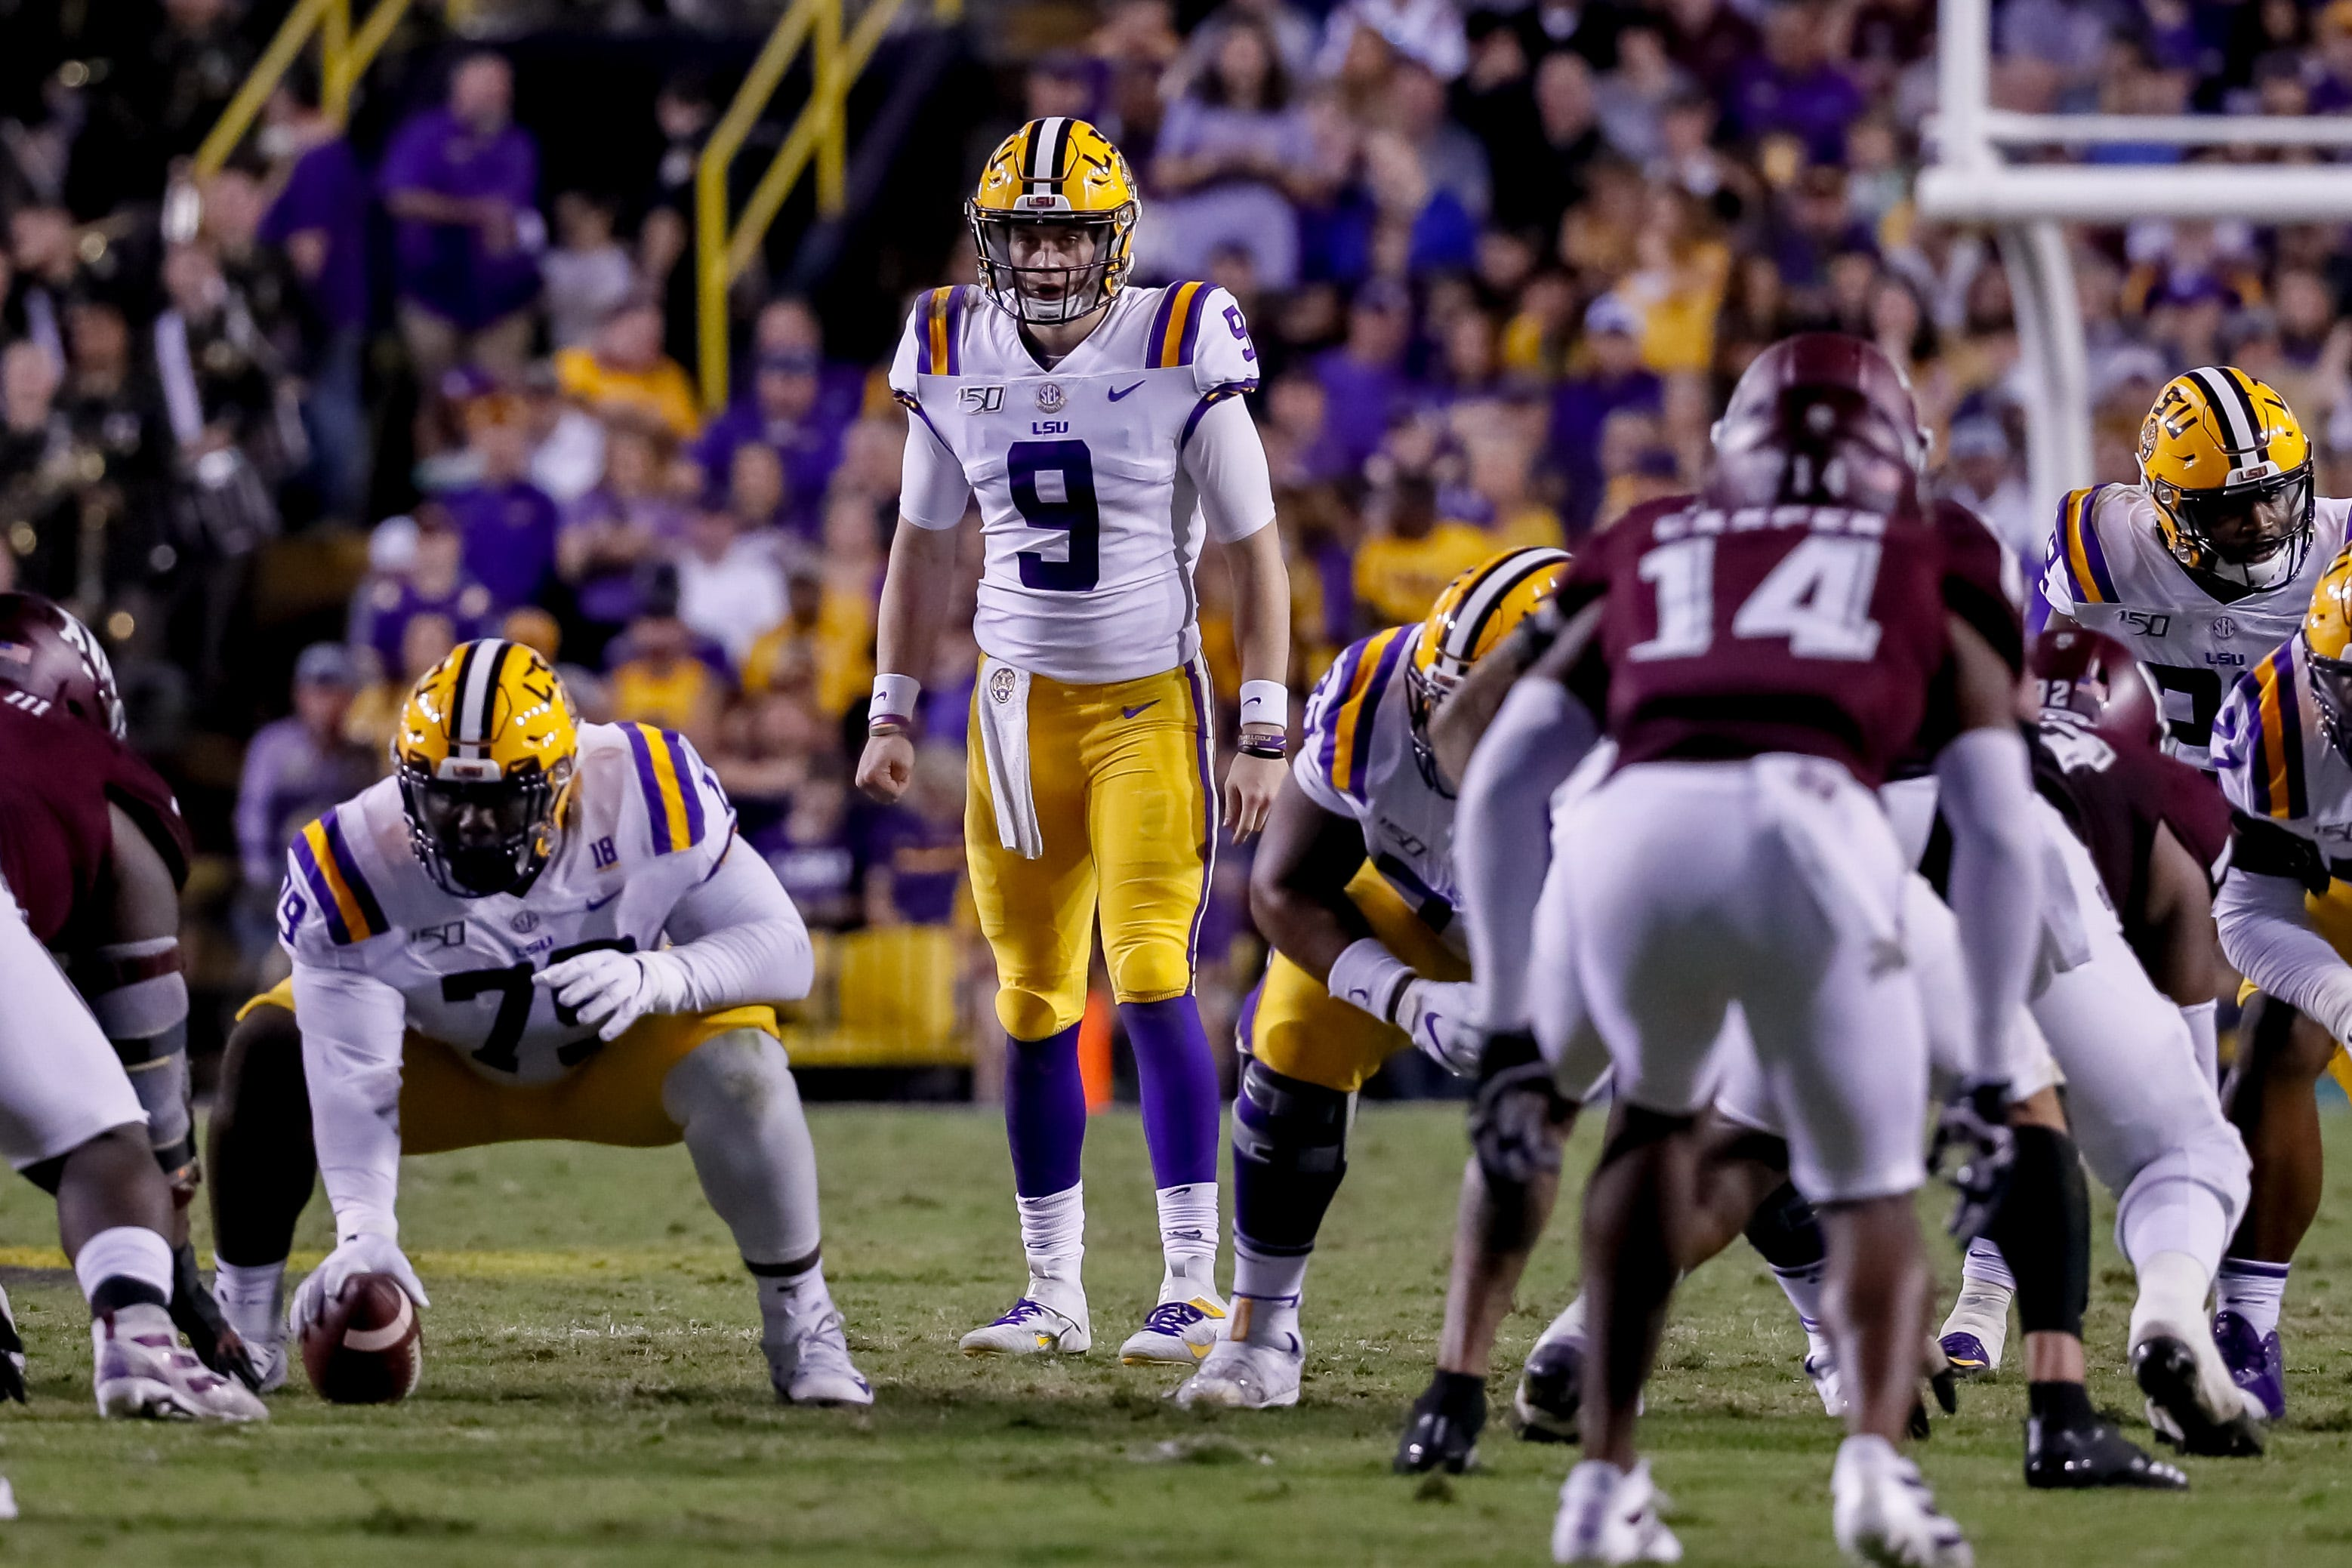 Heisman Watch: Joe Burrow continues to lead with one weekend left for contenders